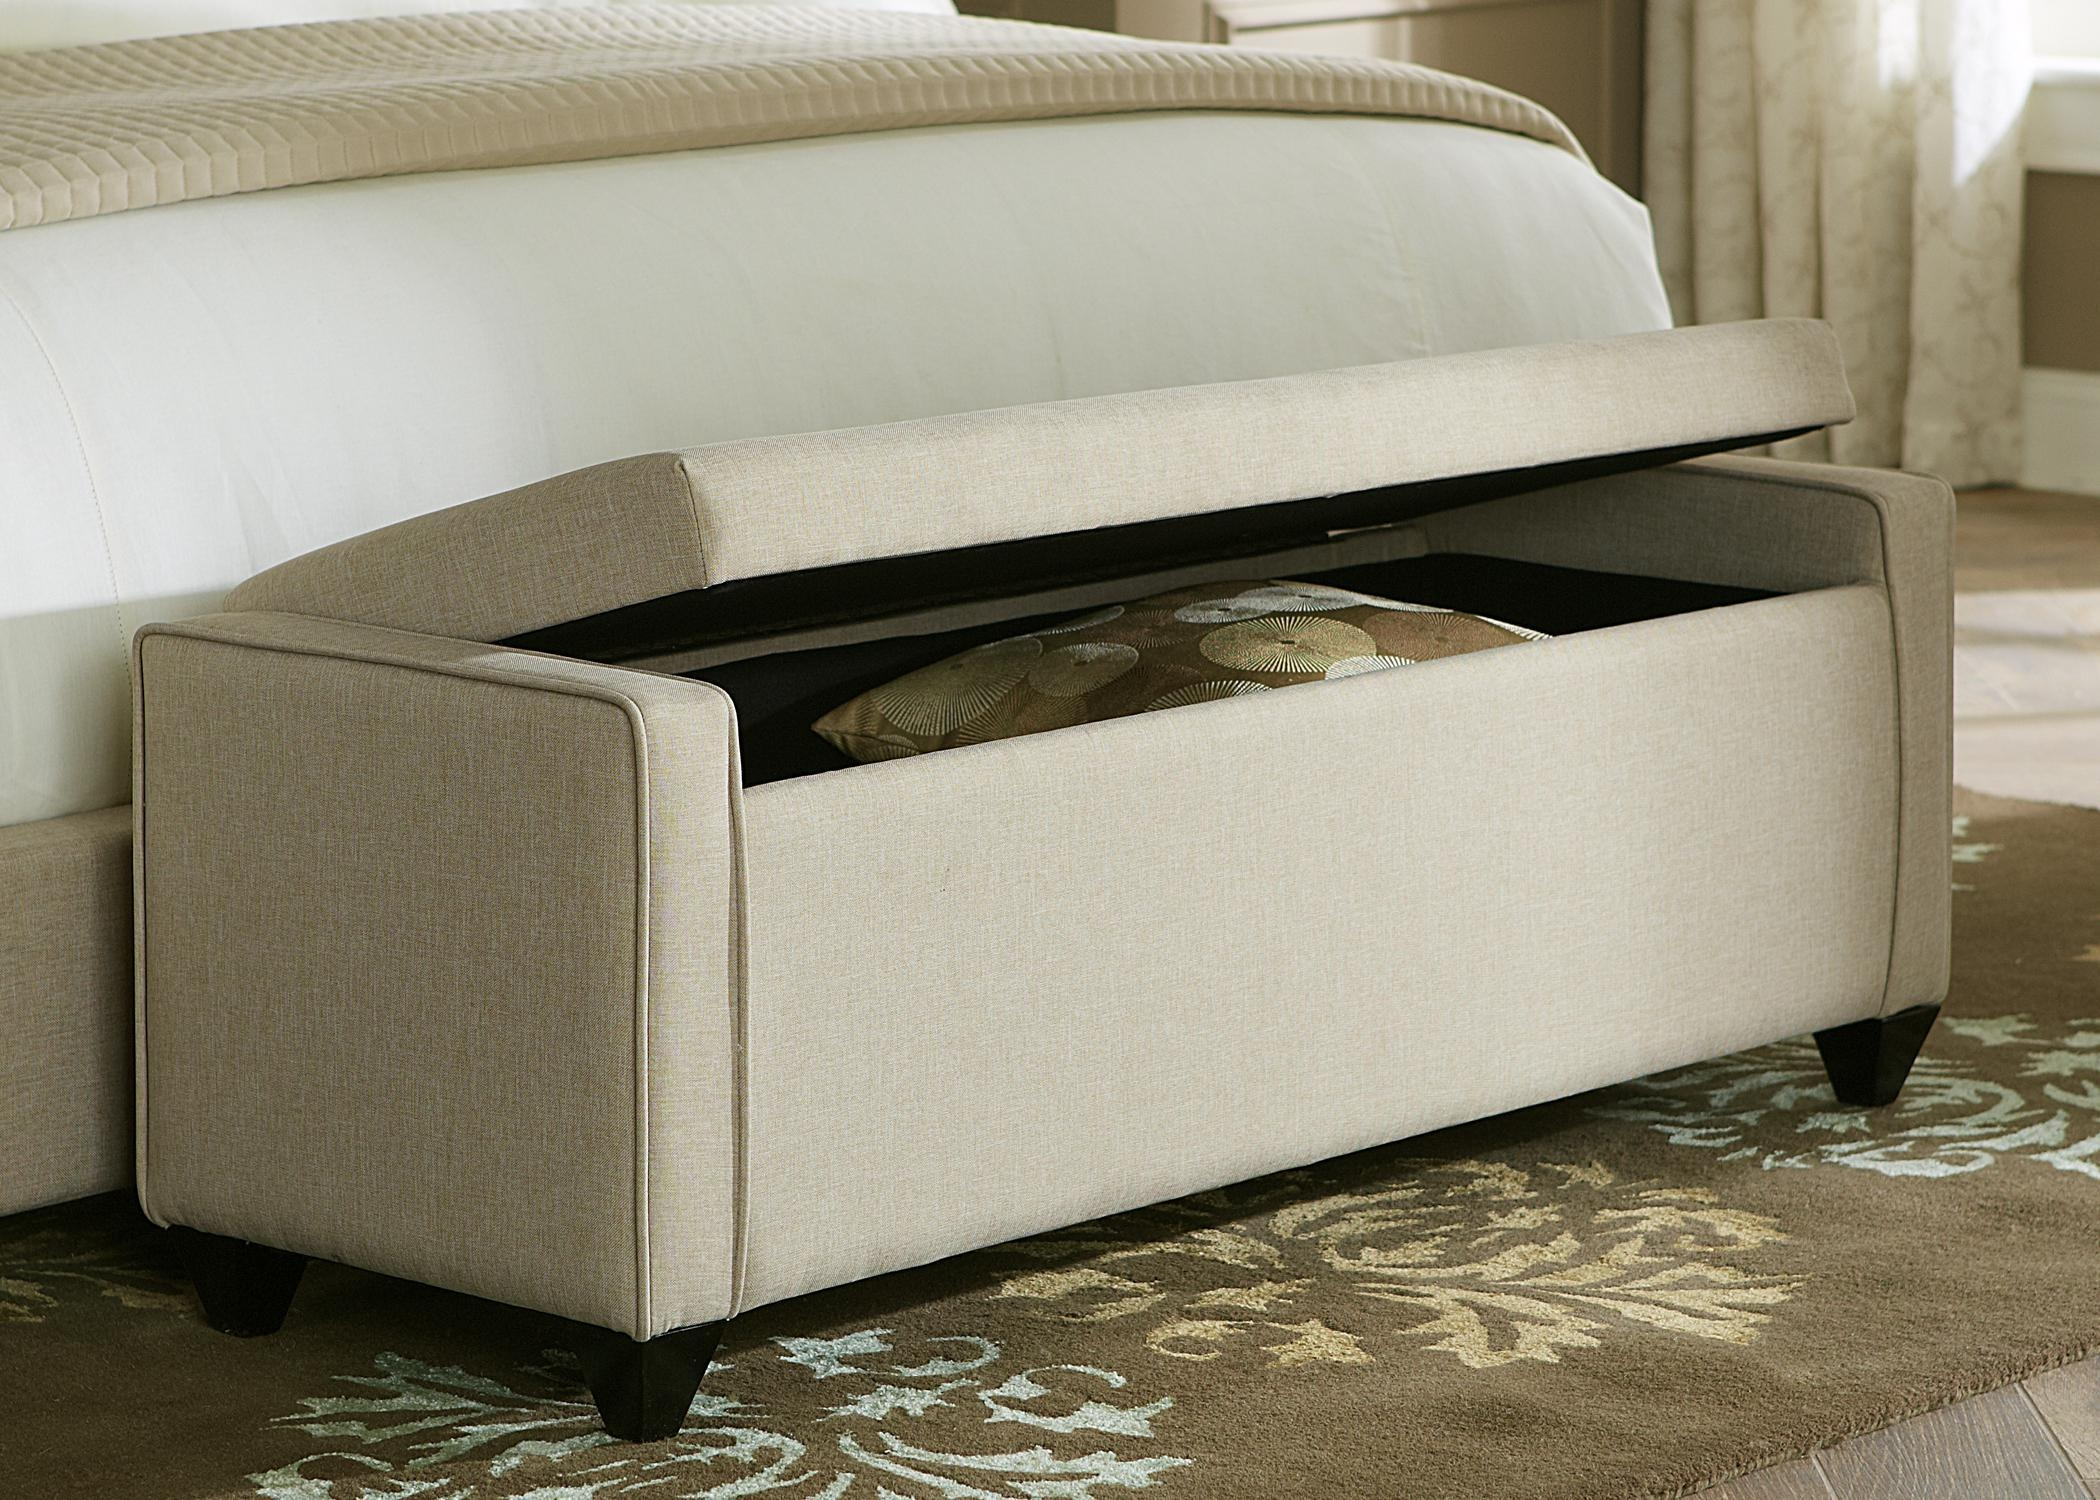 Bedroom Furniture : Storage Bench With Seat Bedroom Upholstered Within Bedroom Bench Sofas (Image 5 of 20)